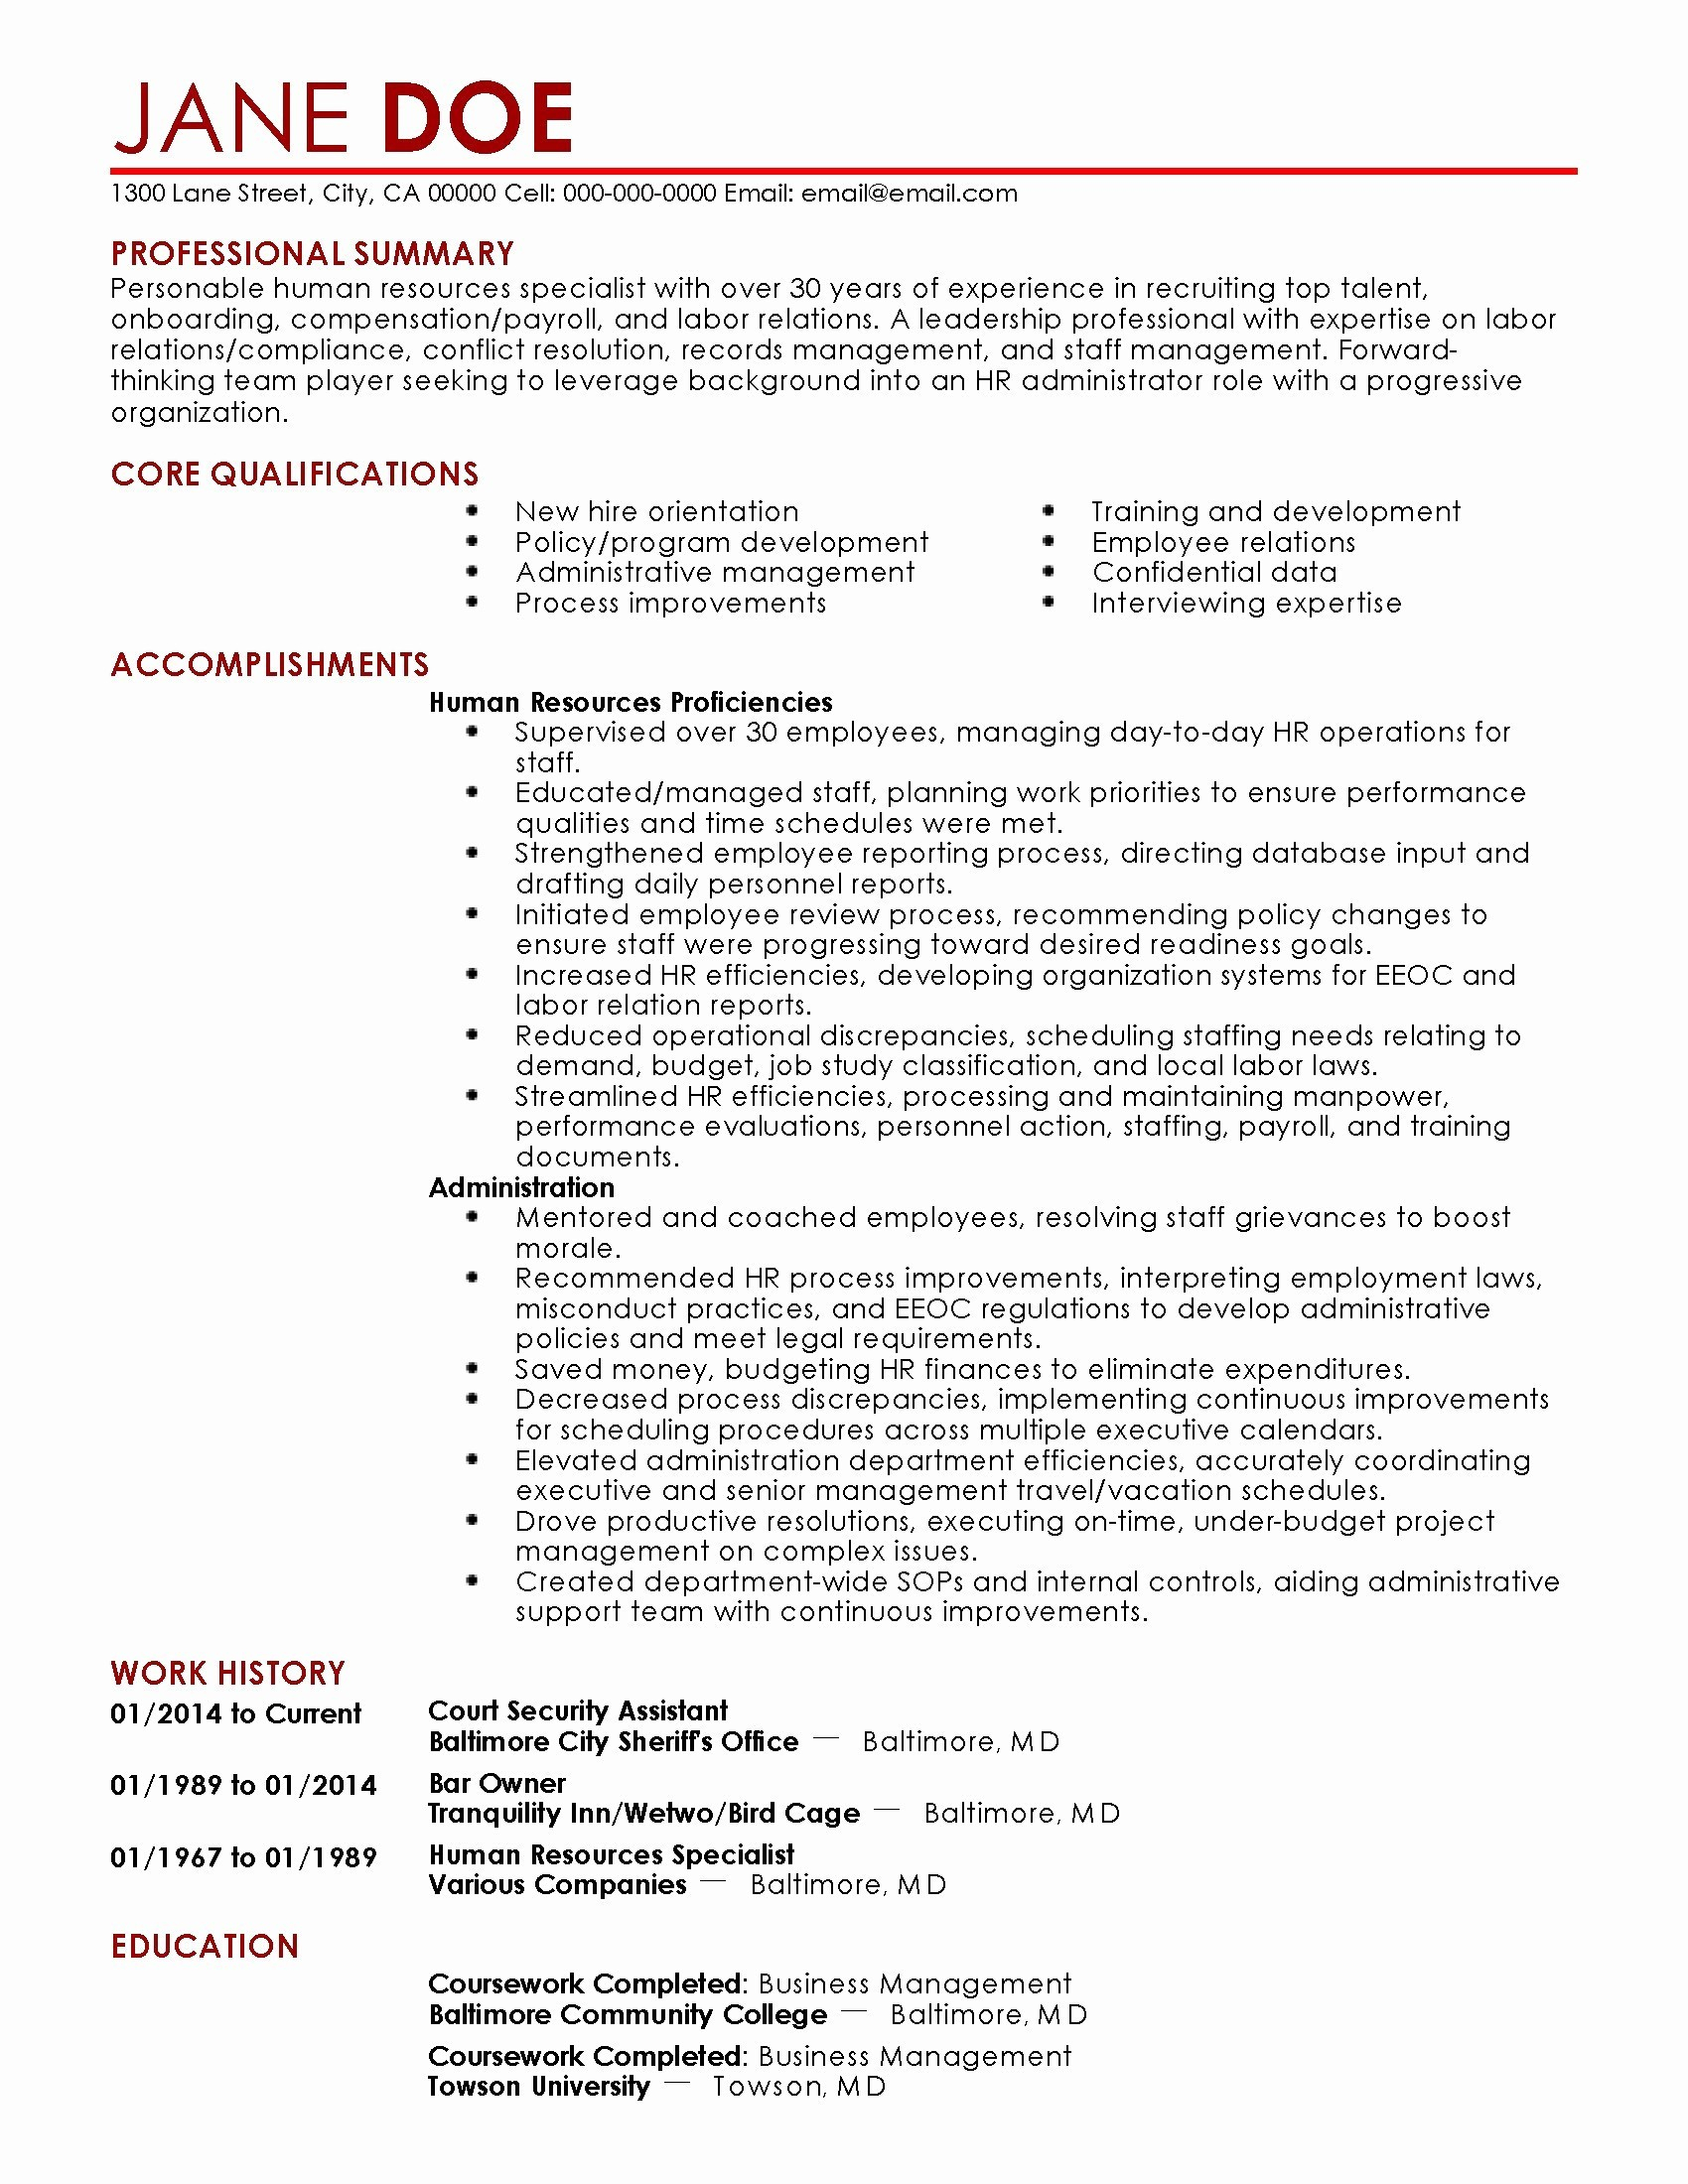 Medical assistant Summary Resume - 19 Unique Medical assistant Resume Template